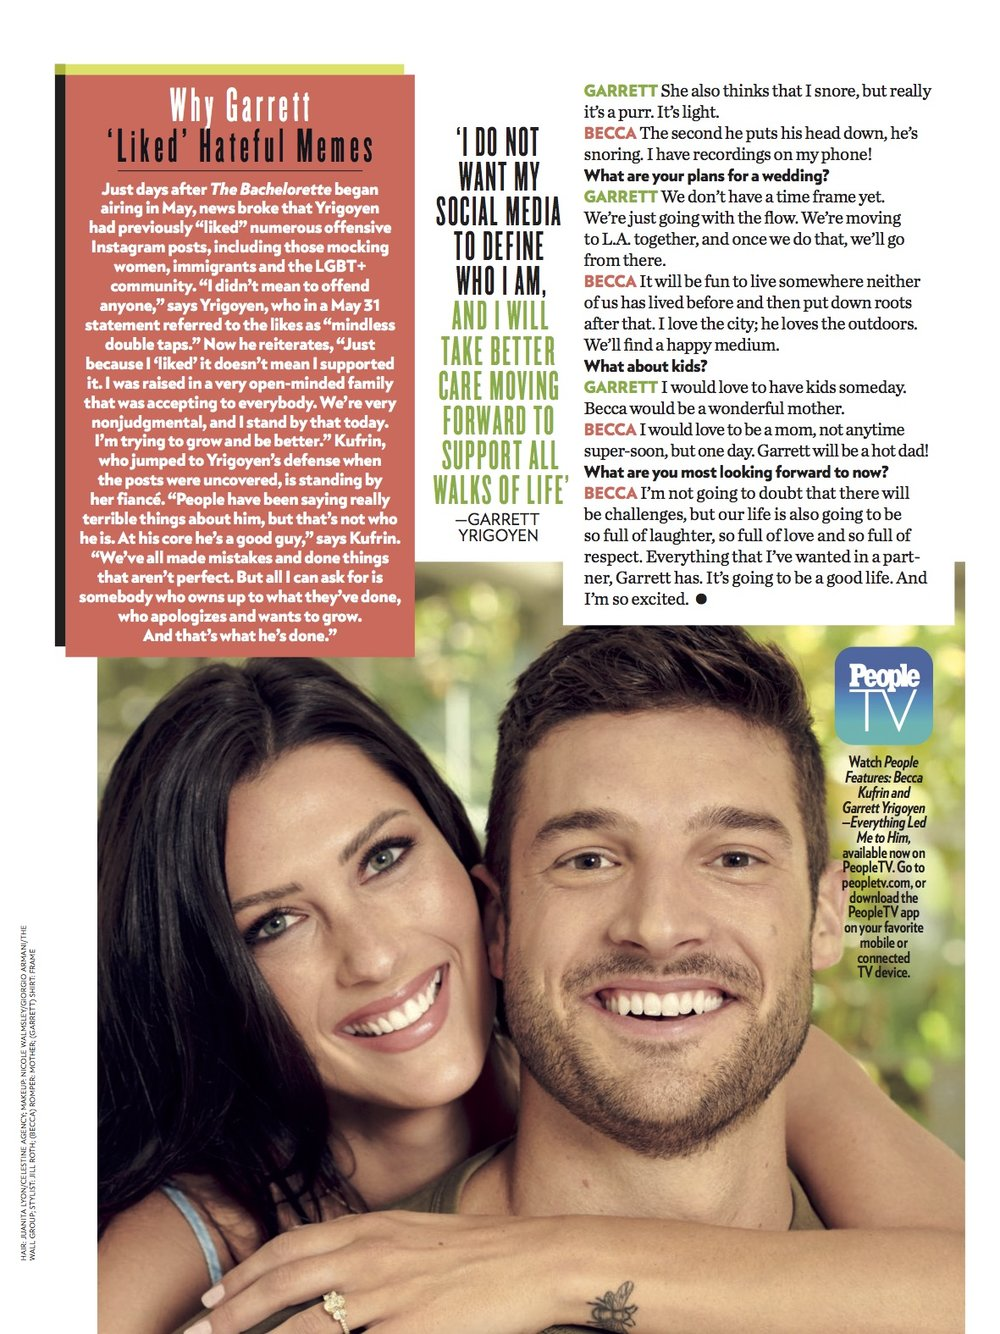 People  Magazine - August 20, 2018: Becca Kufrin in The Shell Bracelet. Page 3.